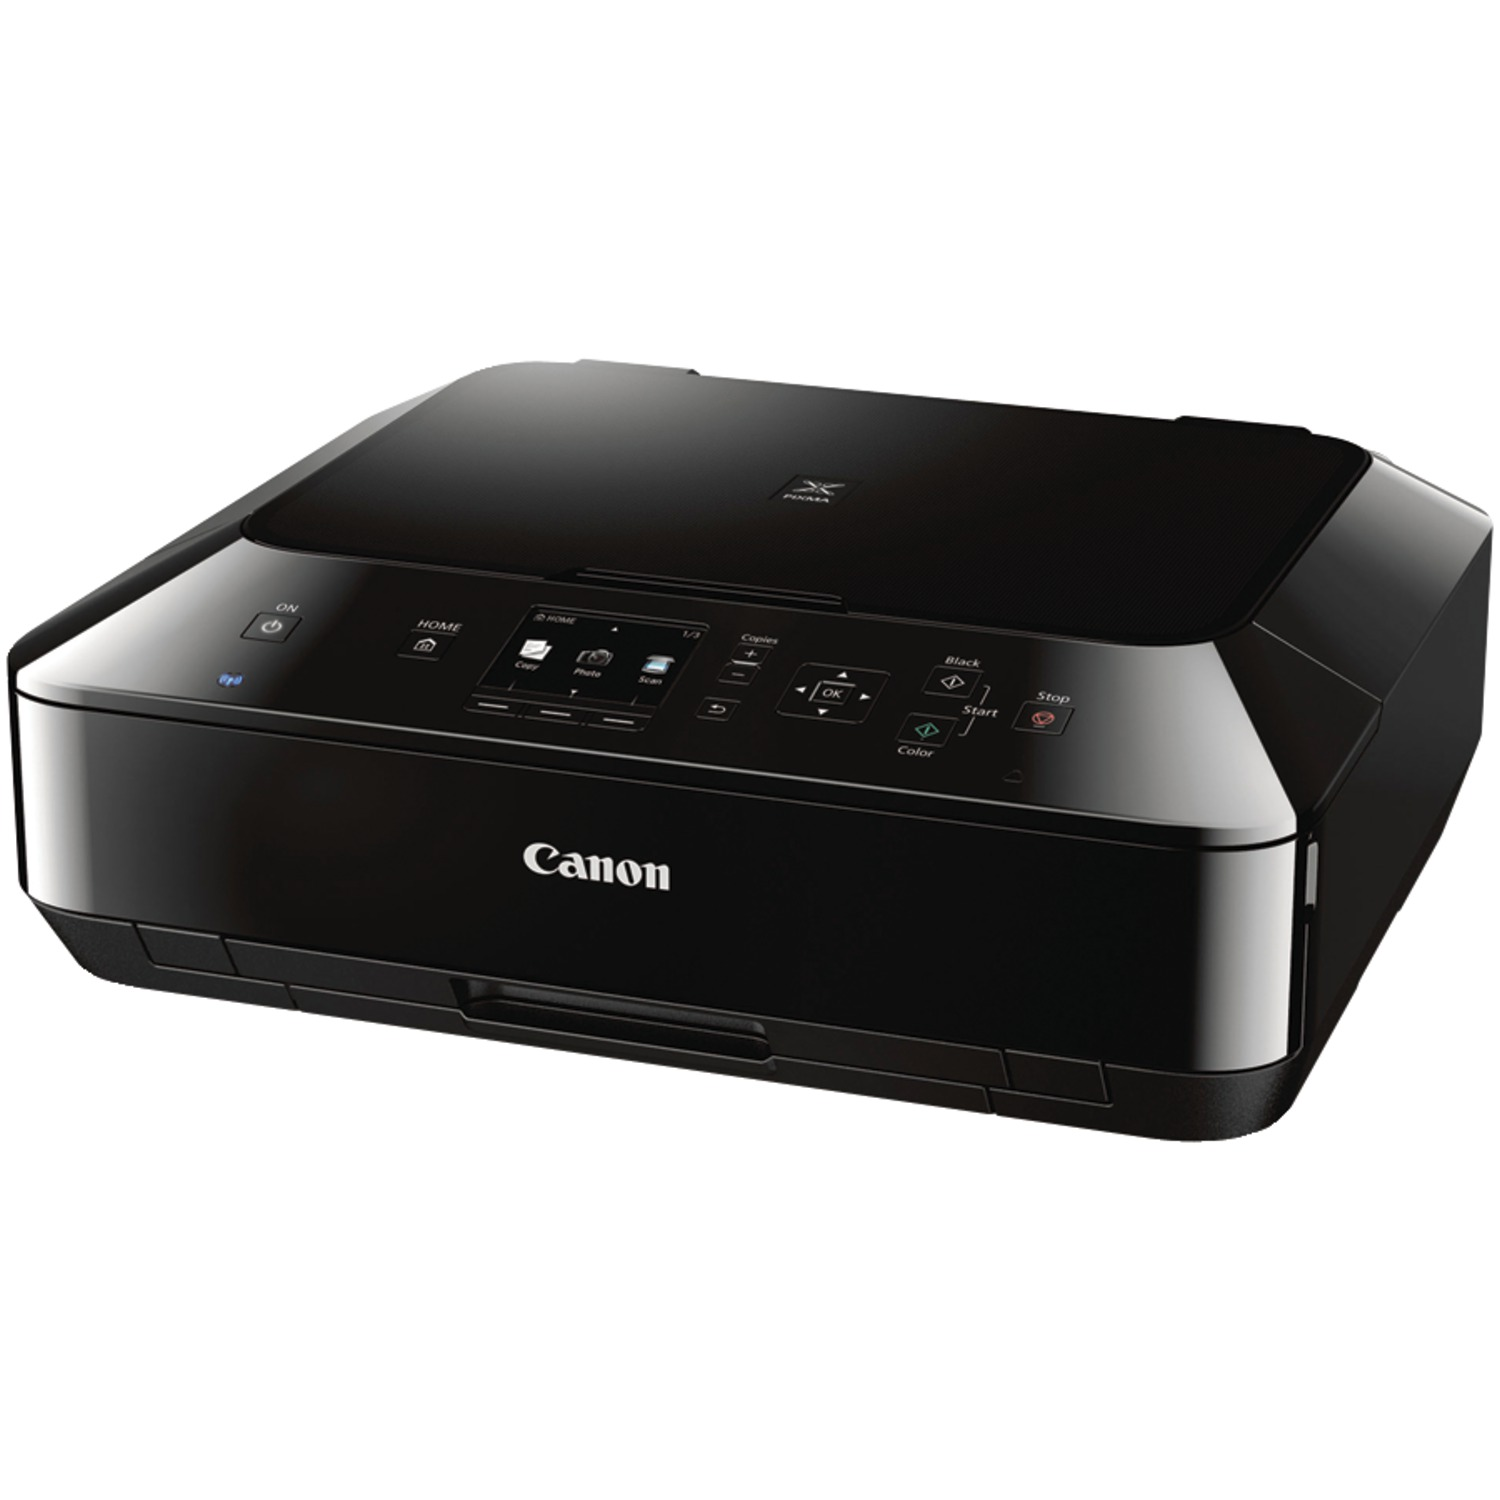 canon 6225b002 pixma r mg5420 printer scanner. Black Bedroom Furniture Sets. Home Design Ideas